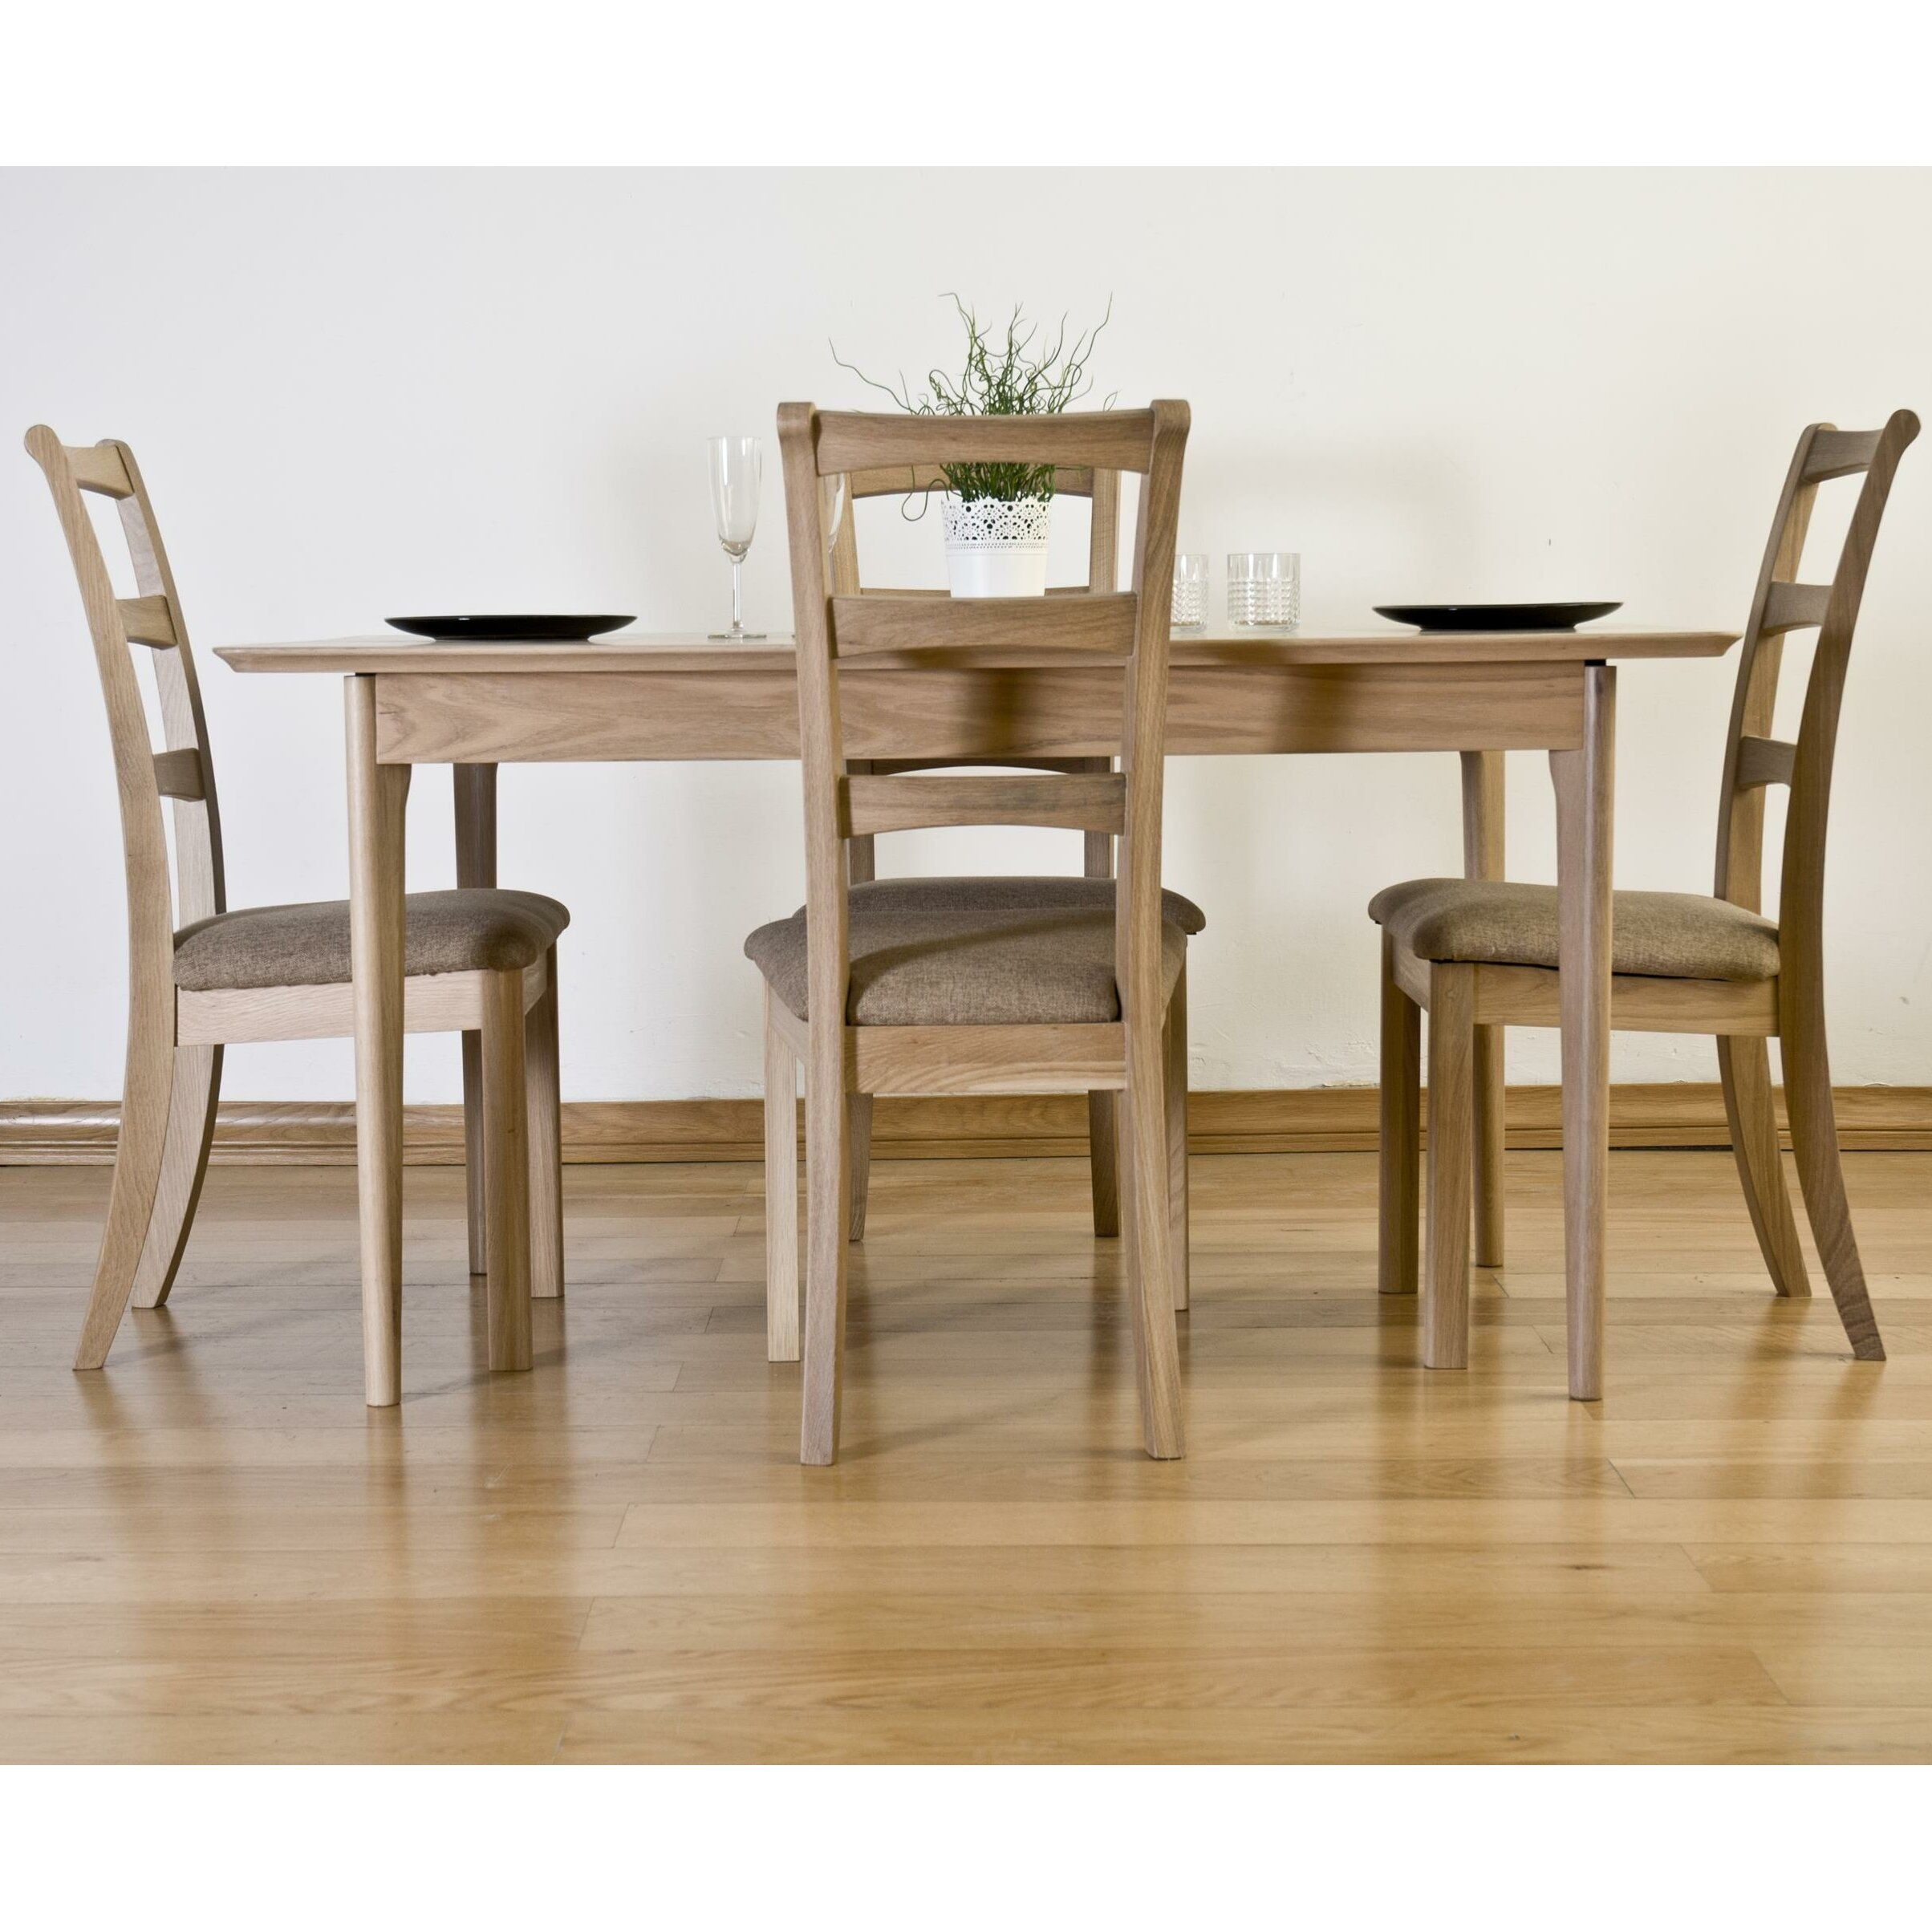 Homestead Living Dining Table And 4 Chairs  Wayfair Uk